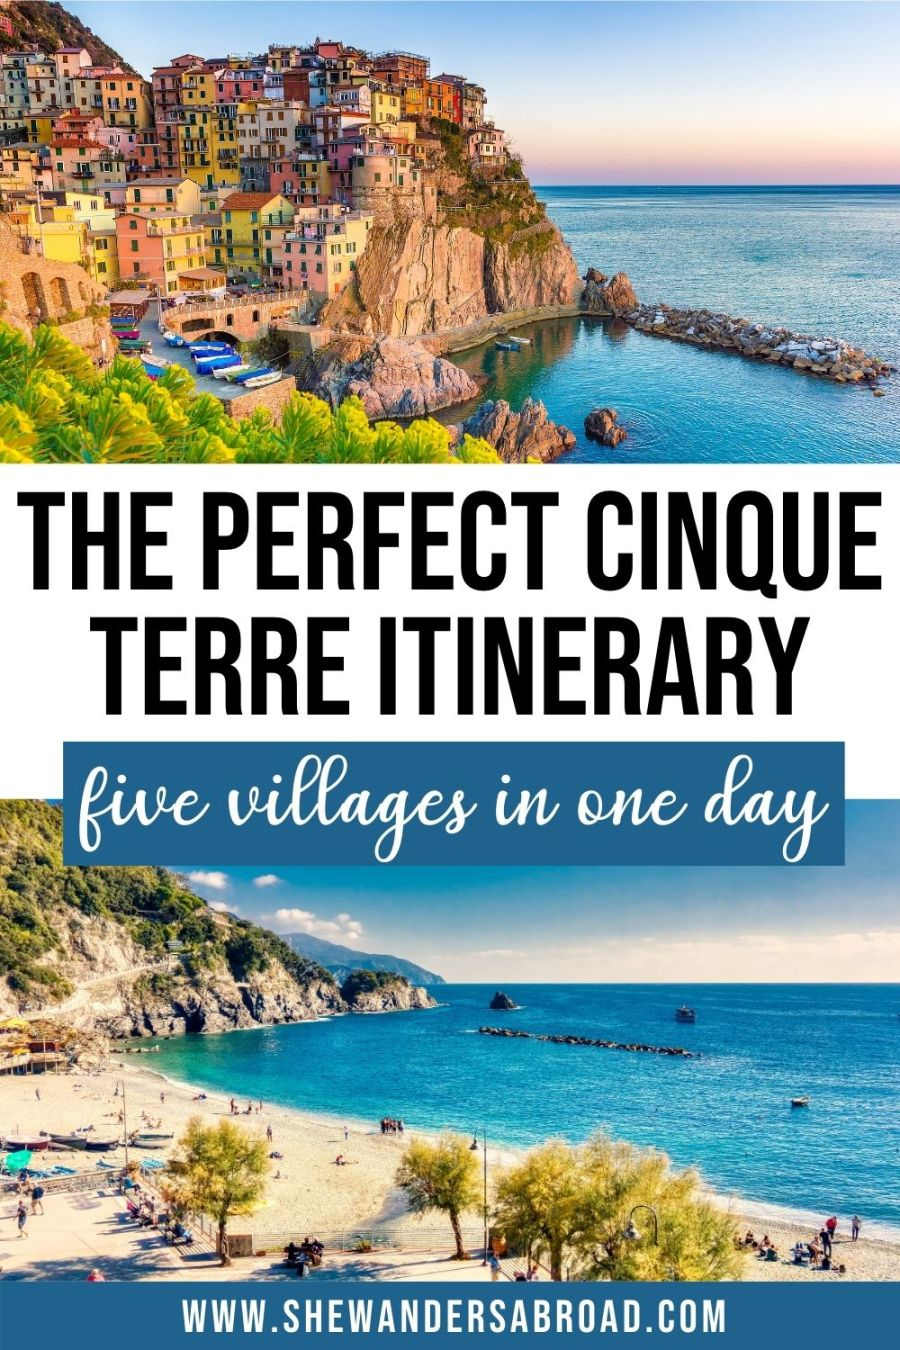 The Perfect One Day in Cinque Terre Itinerary